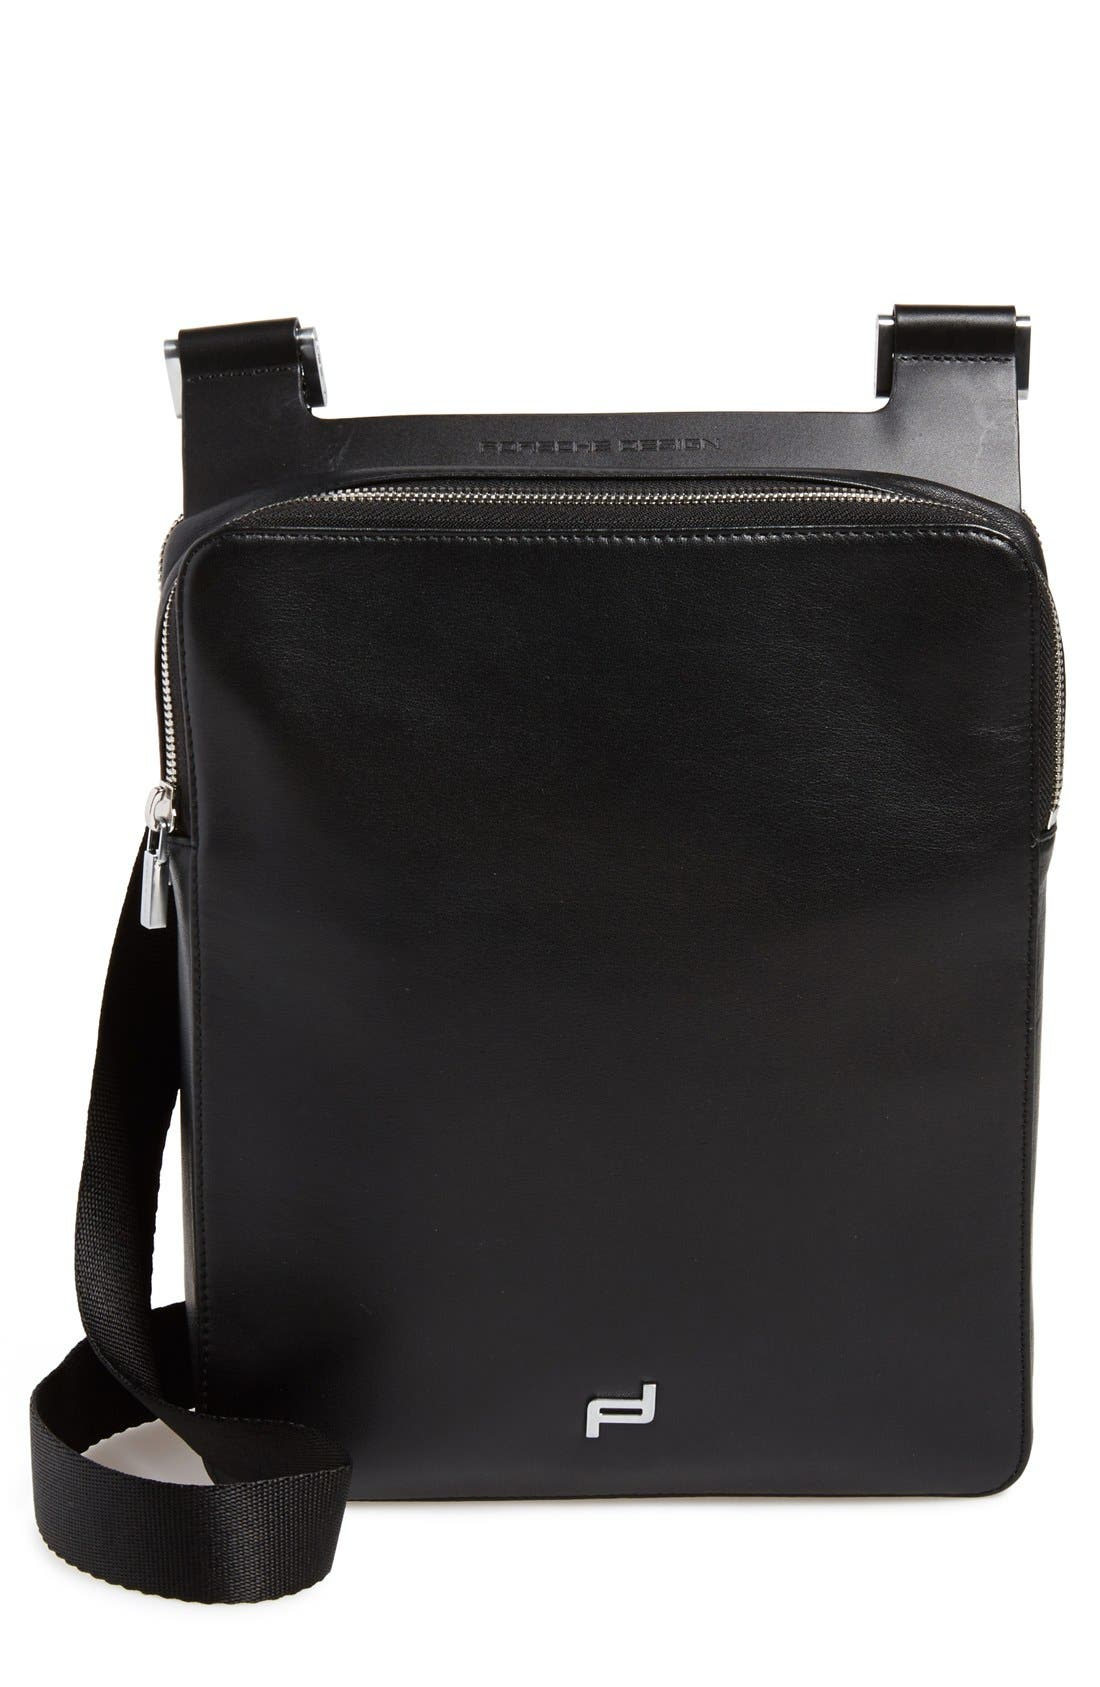 Men's Messenger Bags | Nordstrom